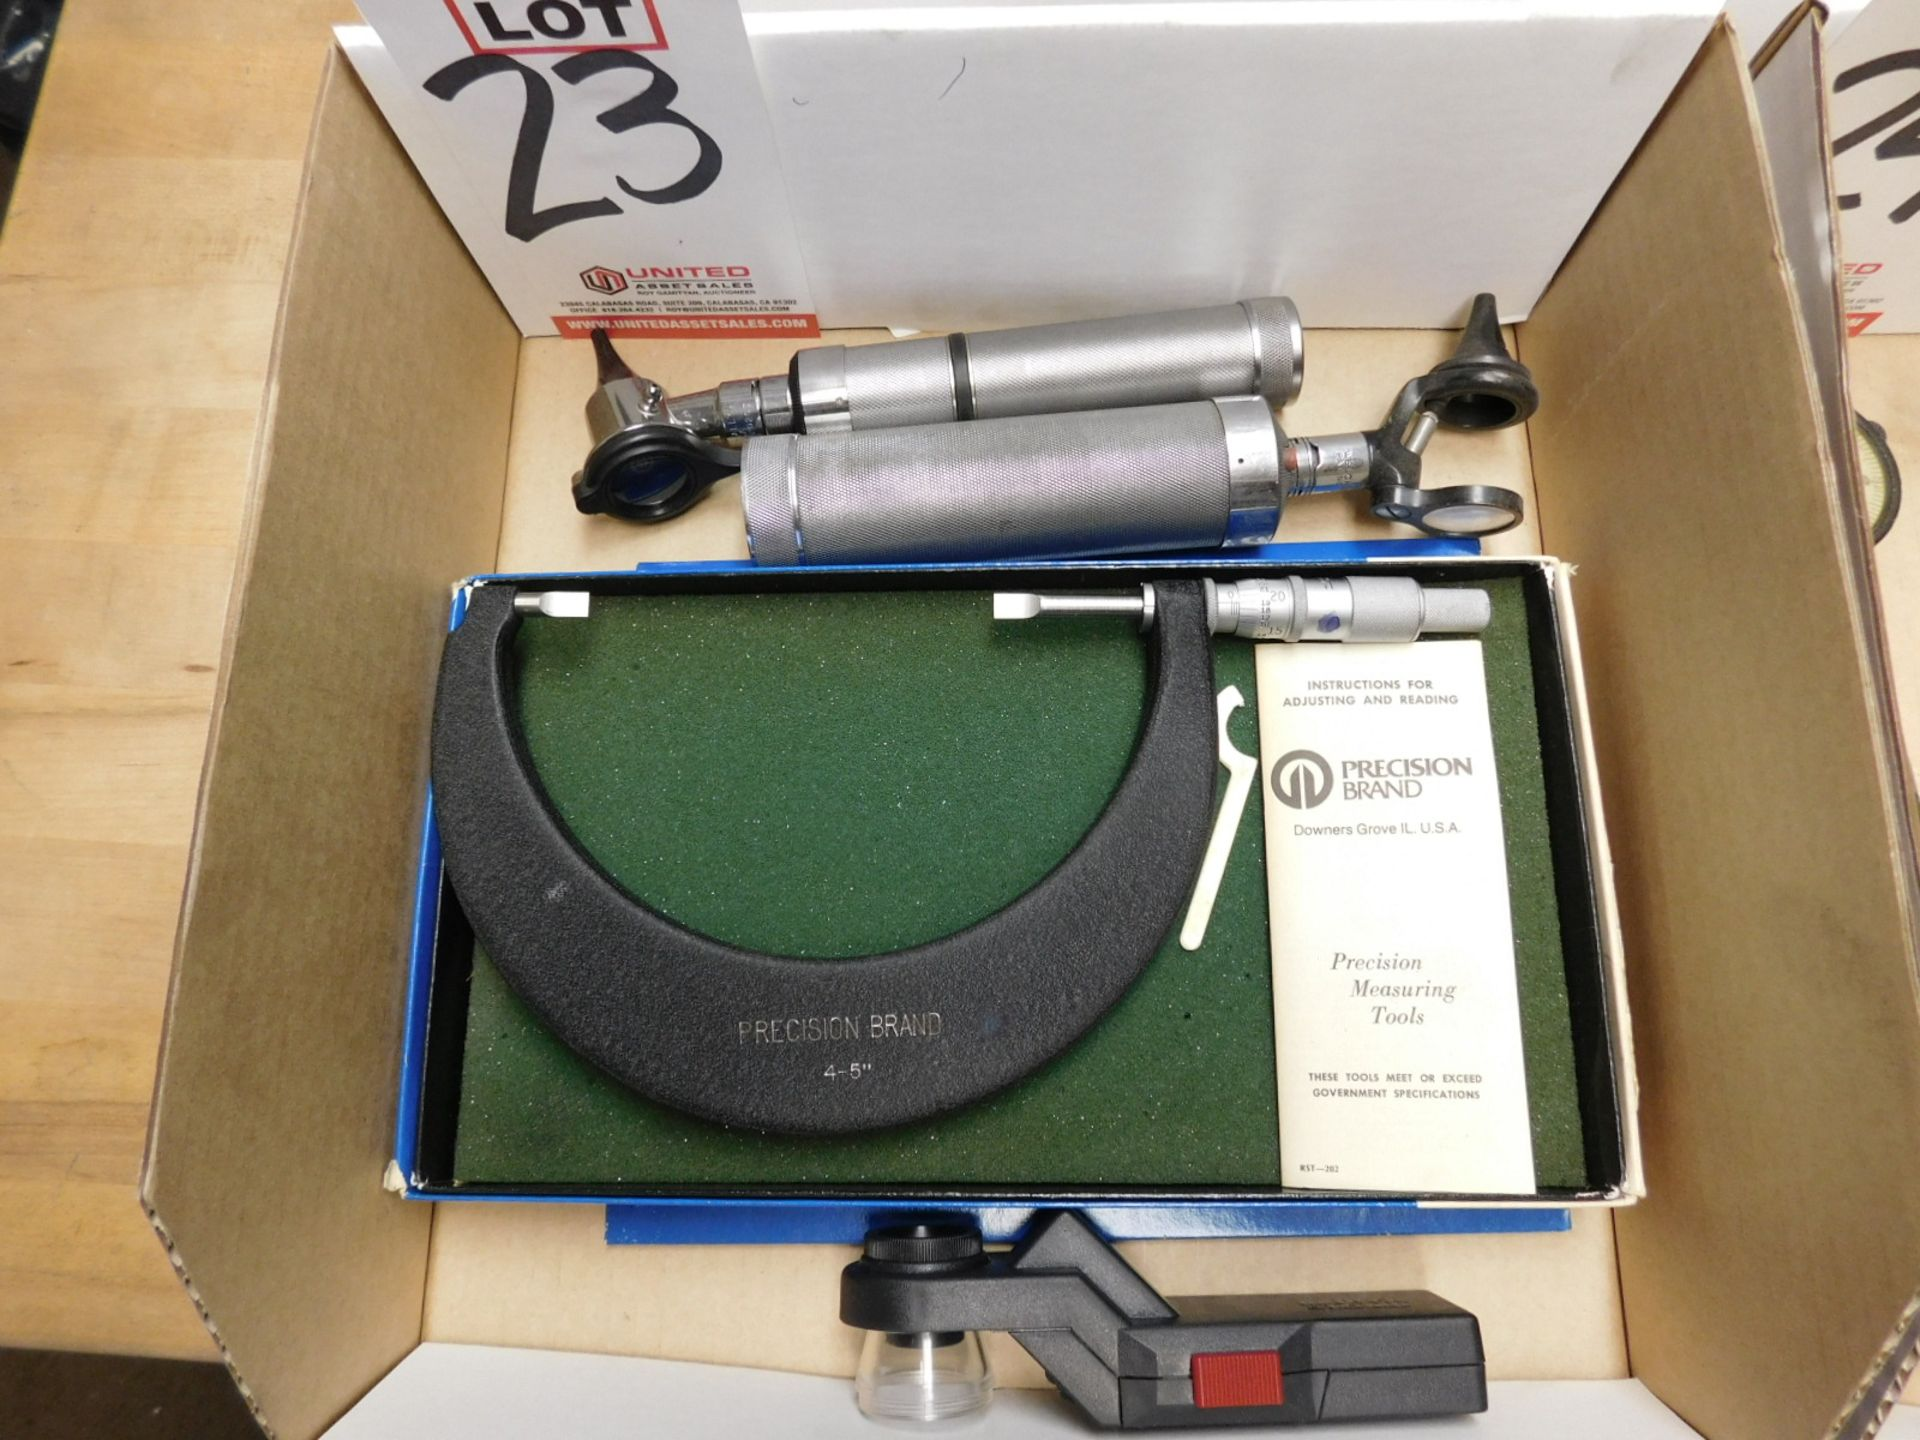 """Lot 23 - LOT - (1) PRECISION BRAND 4""""-5"""" BLADE MIC, (2) WELCH ALLYN OTOSCOPES AND (1) BAUSCH & LOMB LENSCOPE"""